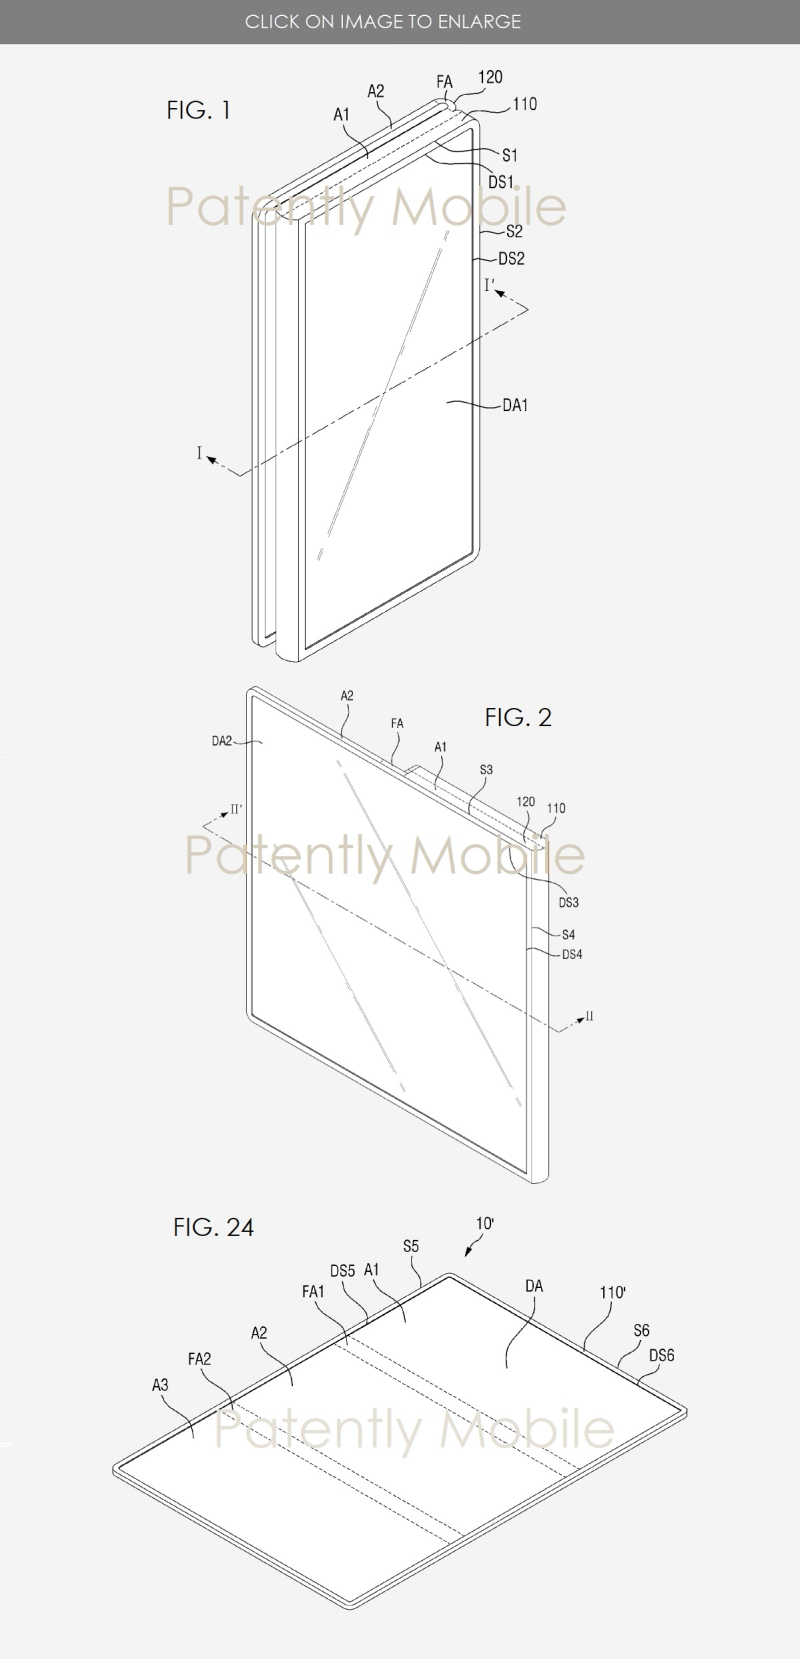 2 - Samsung patent figs 1  2  24 tri-fold phone or tablet